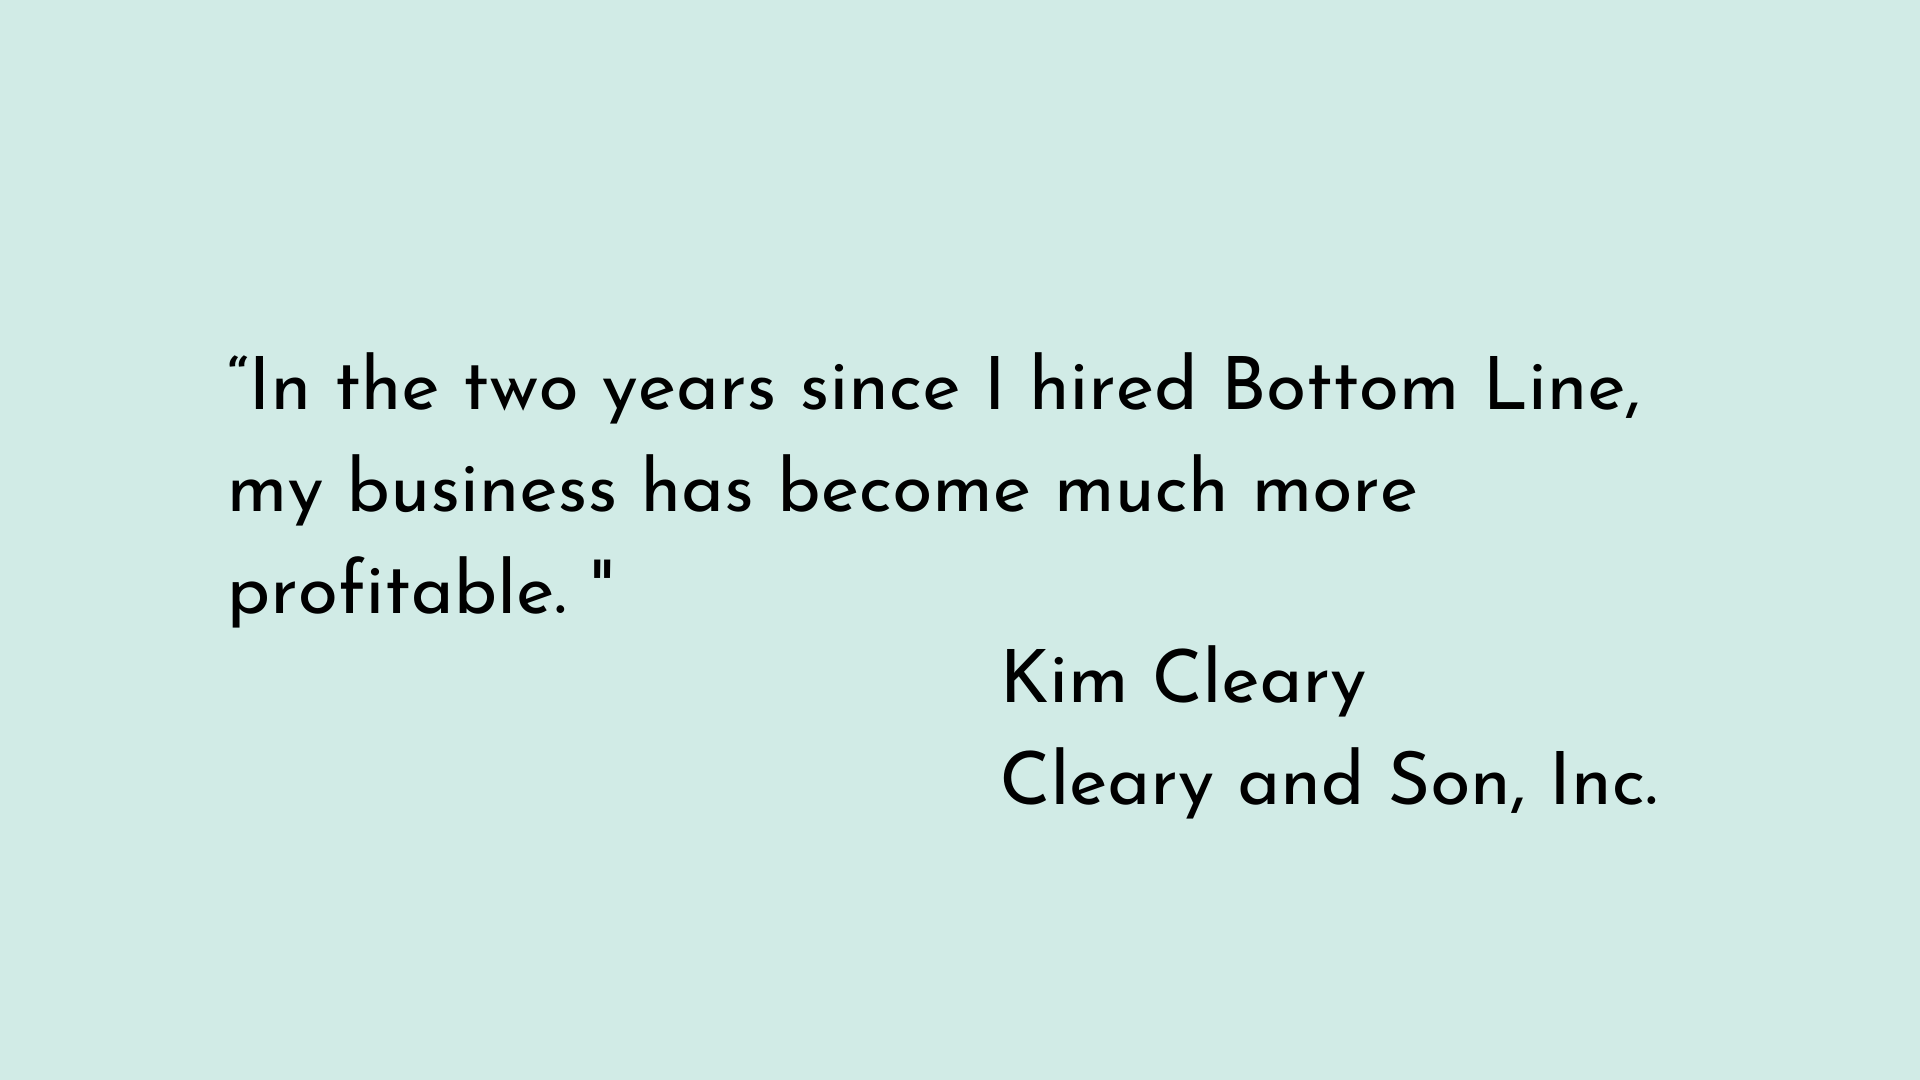 Kim from Cleary & Son